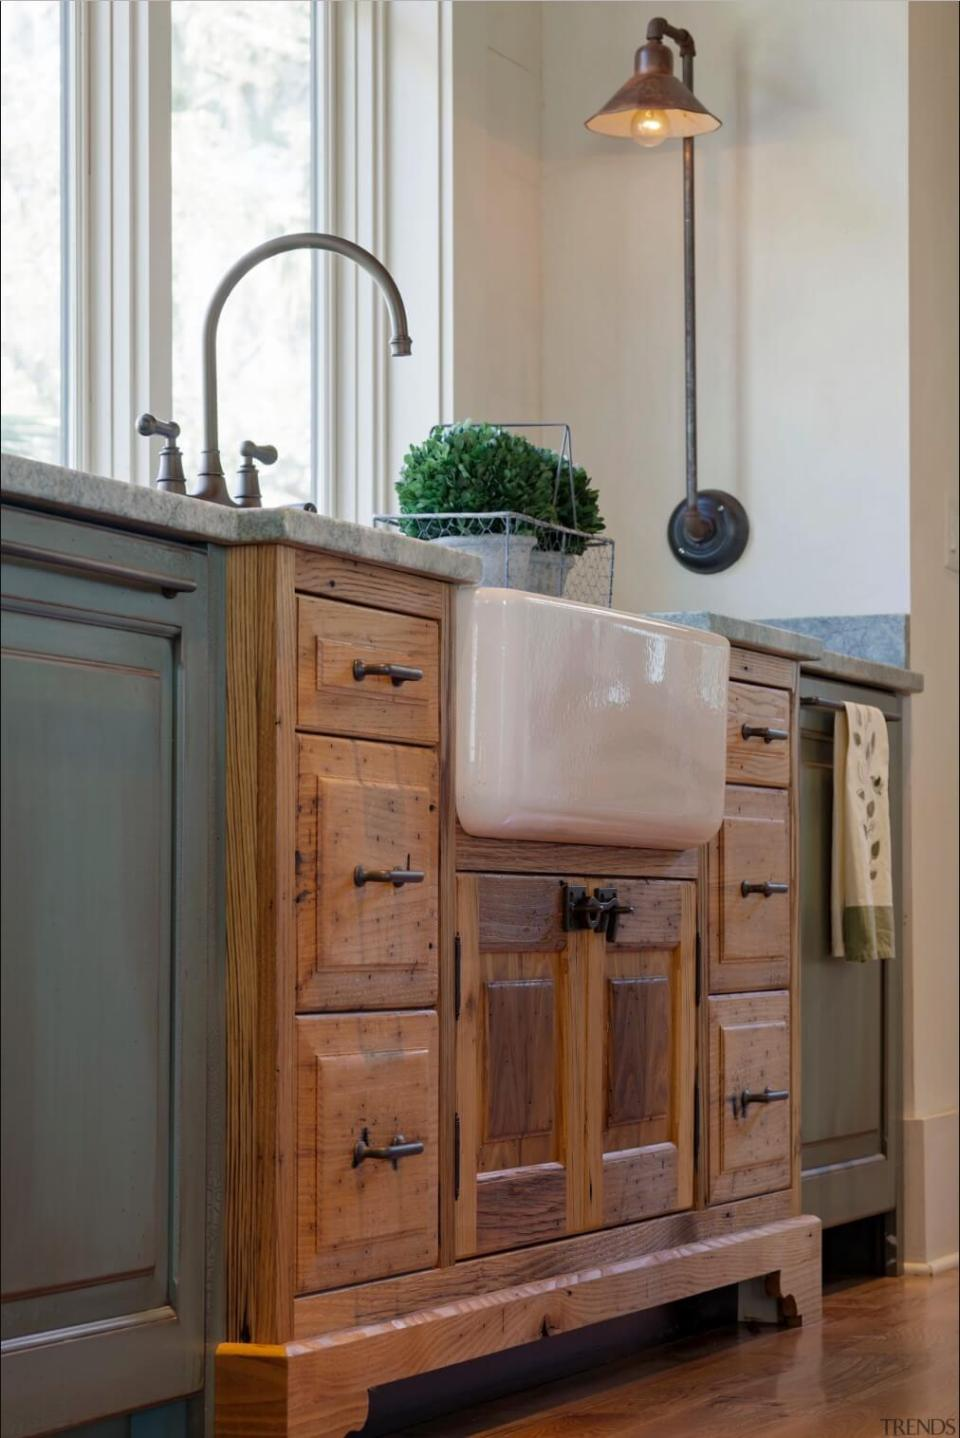 Sink cabinet juts out into the room | Inspiring Farmhouse Kitchen Design & Decor Ideas